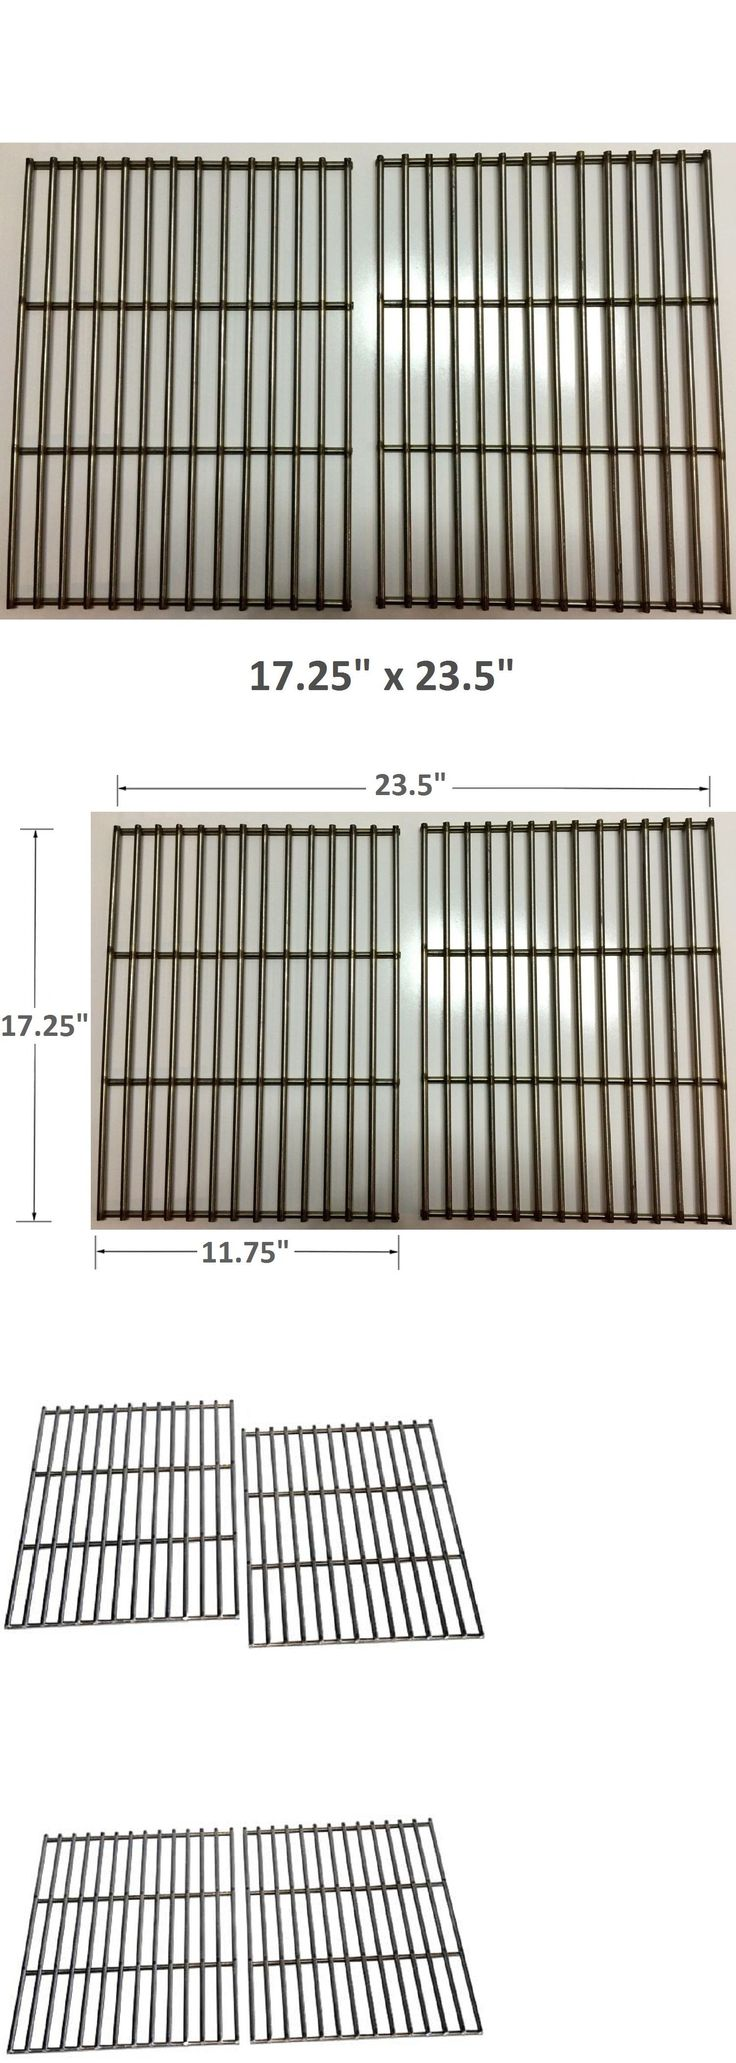 BBQ Tools and Accessories 20725: Gas Grill 2Pc Bbq Grates Stainless Steel Rods Weber Genesis Spirit 700 Part 7527 -> BUY IT NOW ONLY: $68.98 on eBay!